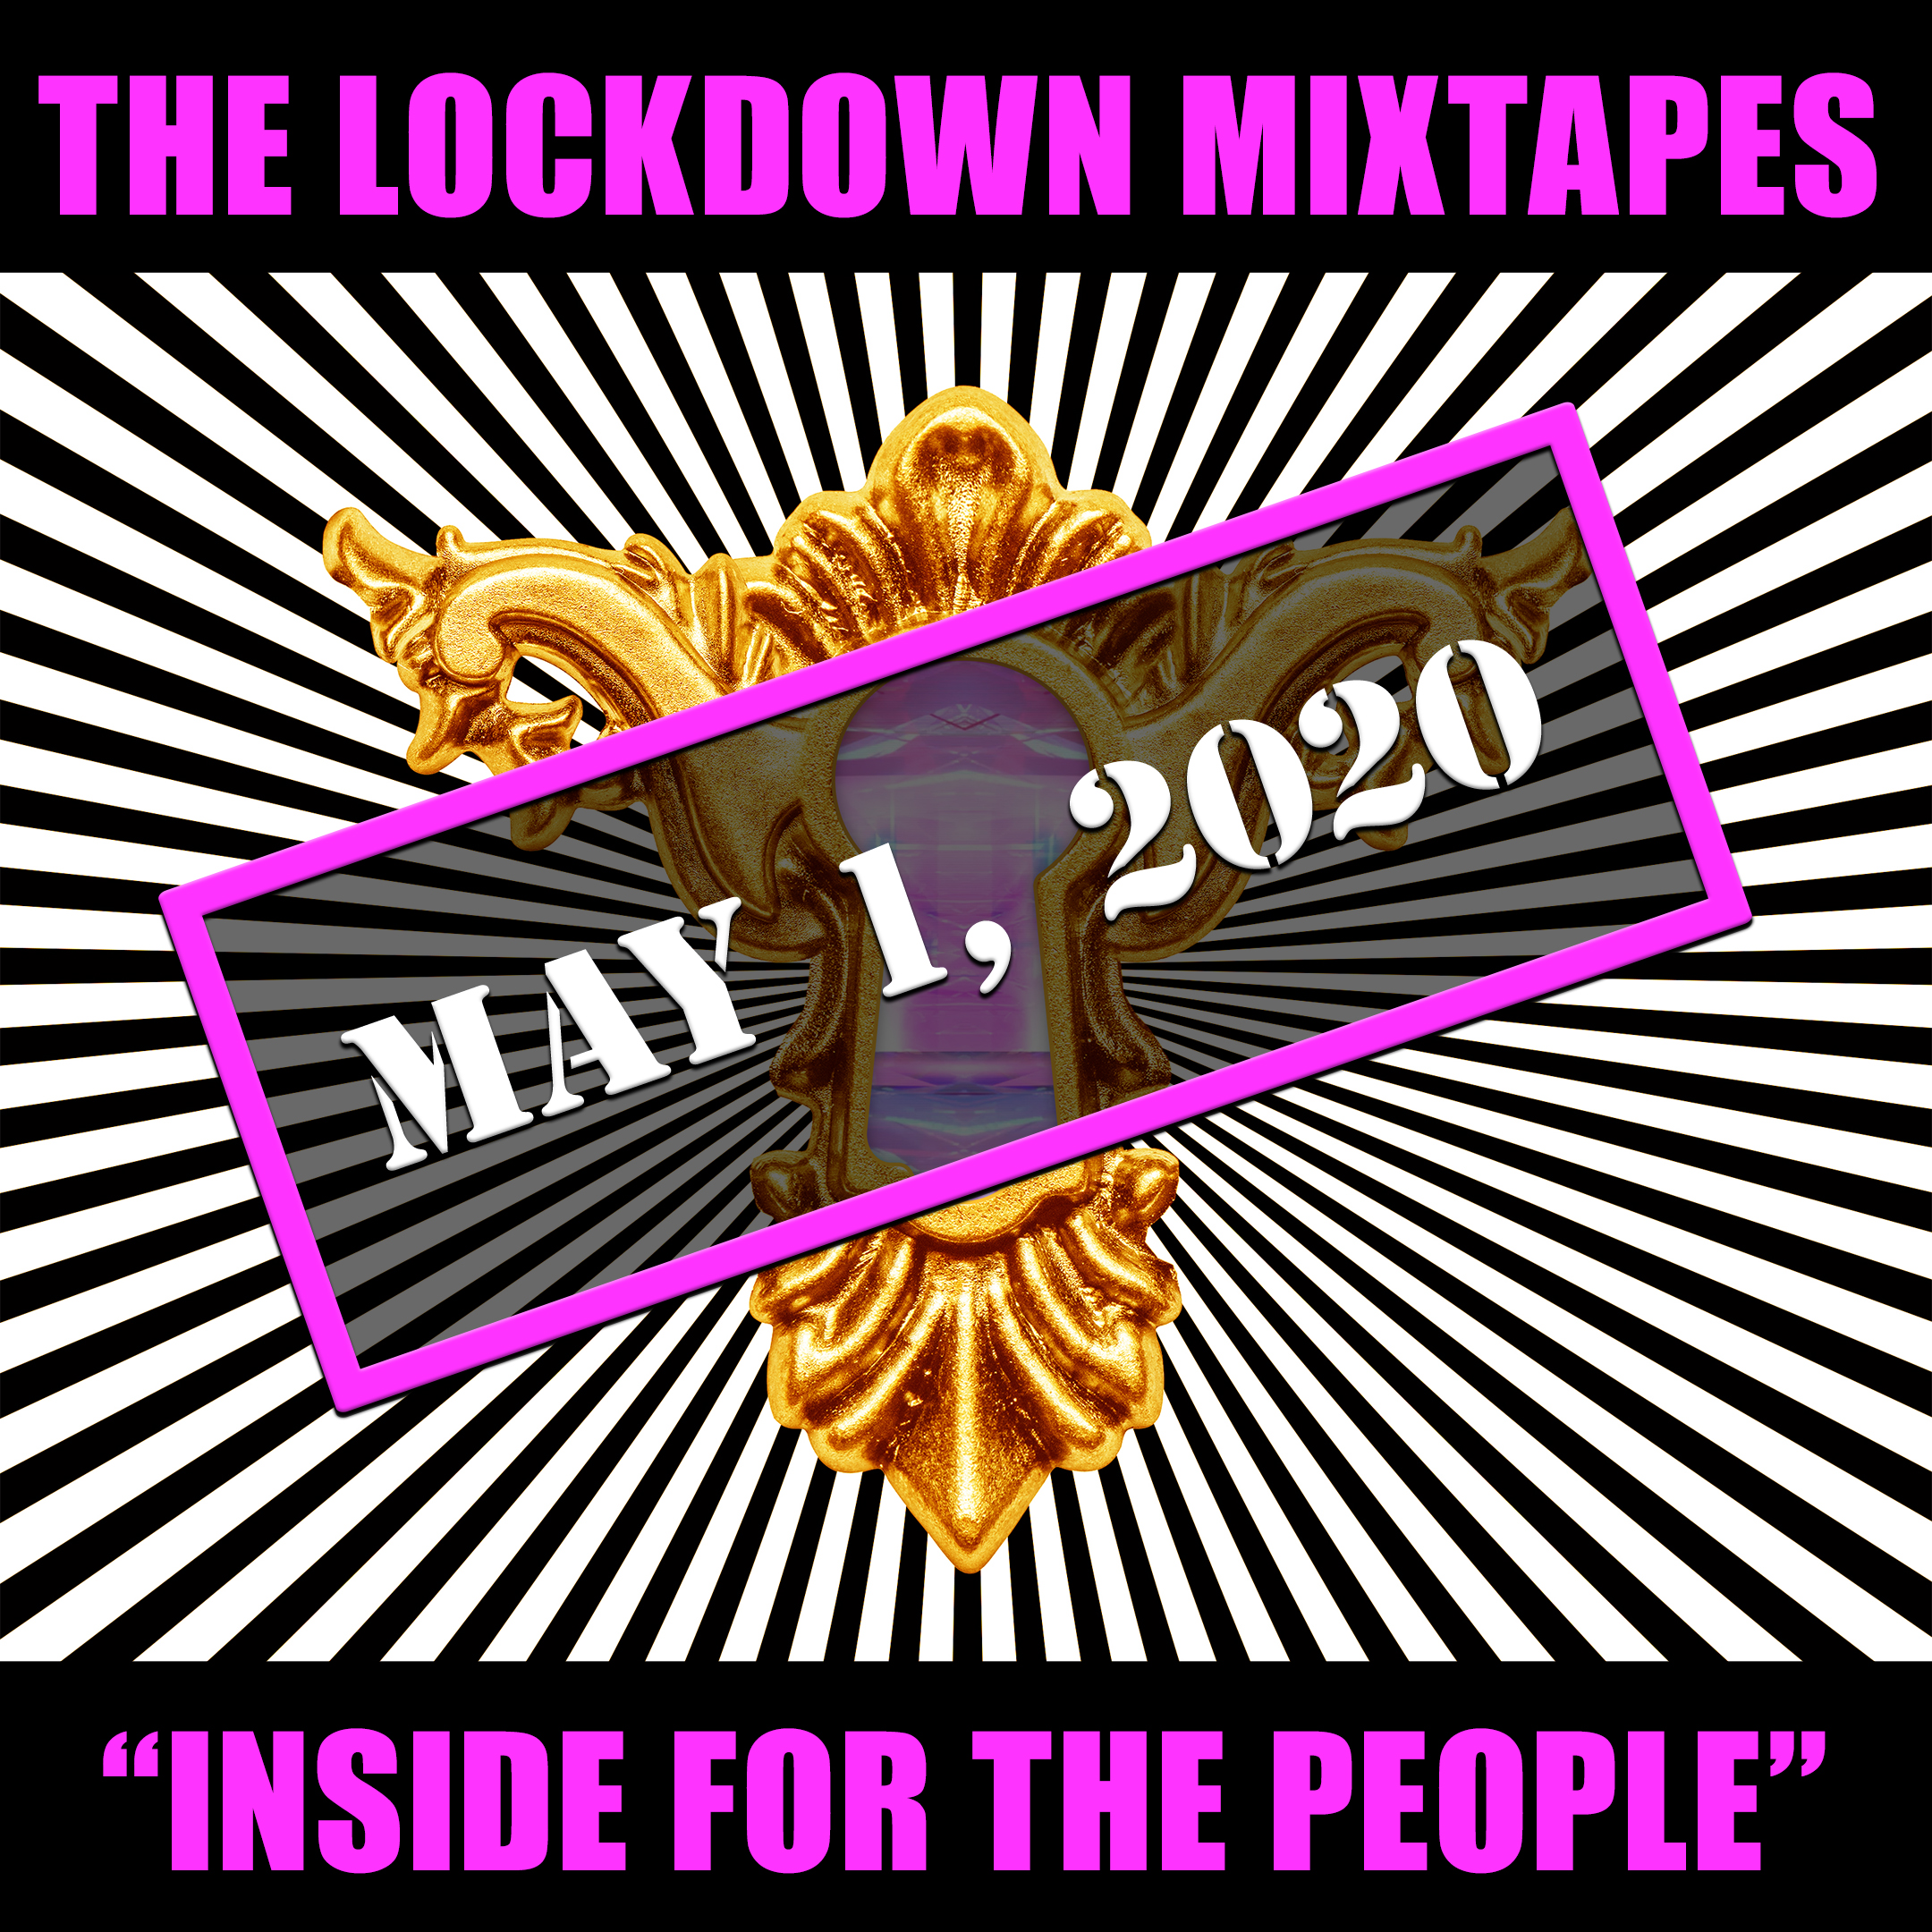 The Lockdown Mixtapes: Inside For The People - OUT MAY 1ST